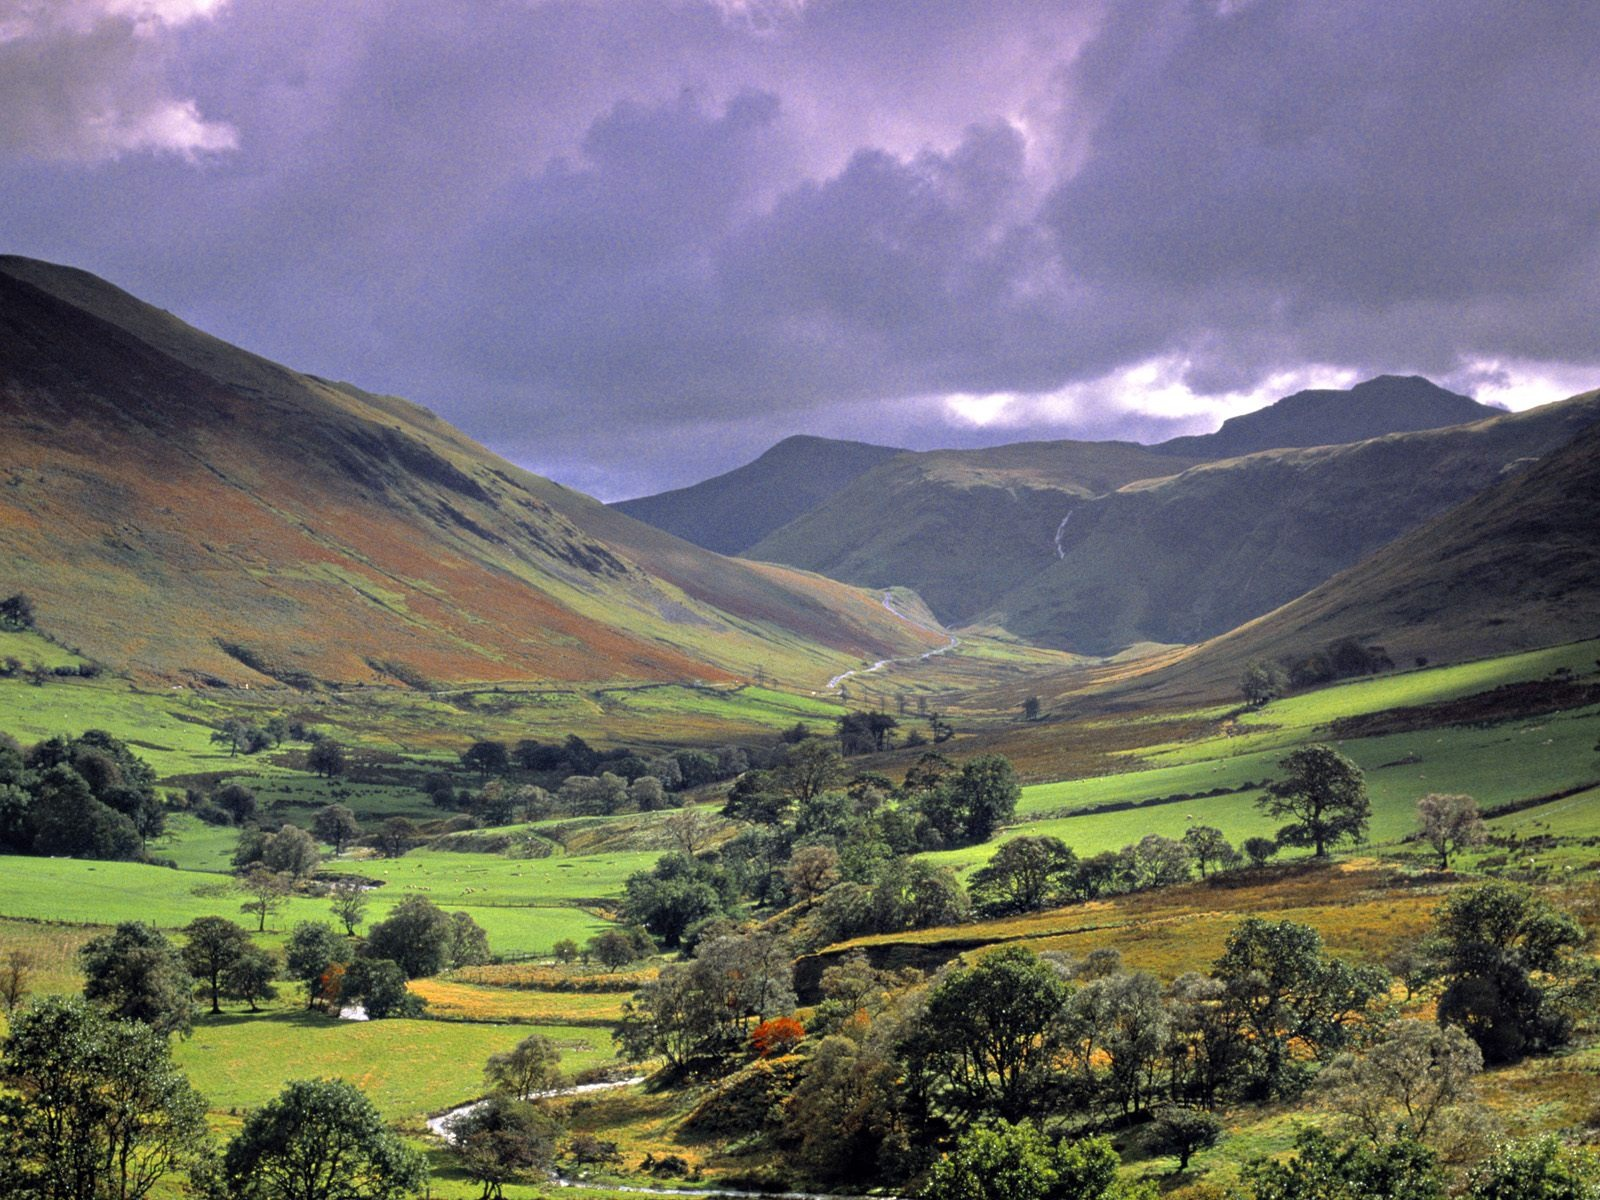 the lake district The lake district explore find out more books features argentina's lake district – the northwestern wedge of argentine patagonia – is a land of picture-perfect glacial lakes surrounded by luxuriant forests, jagged peaks and extinct volcanoes.